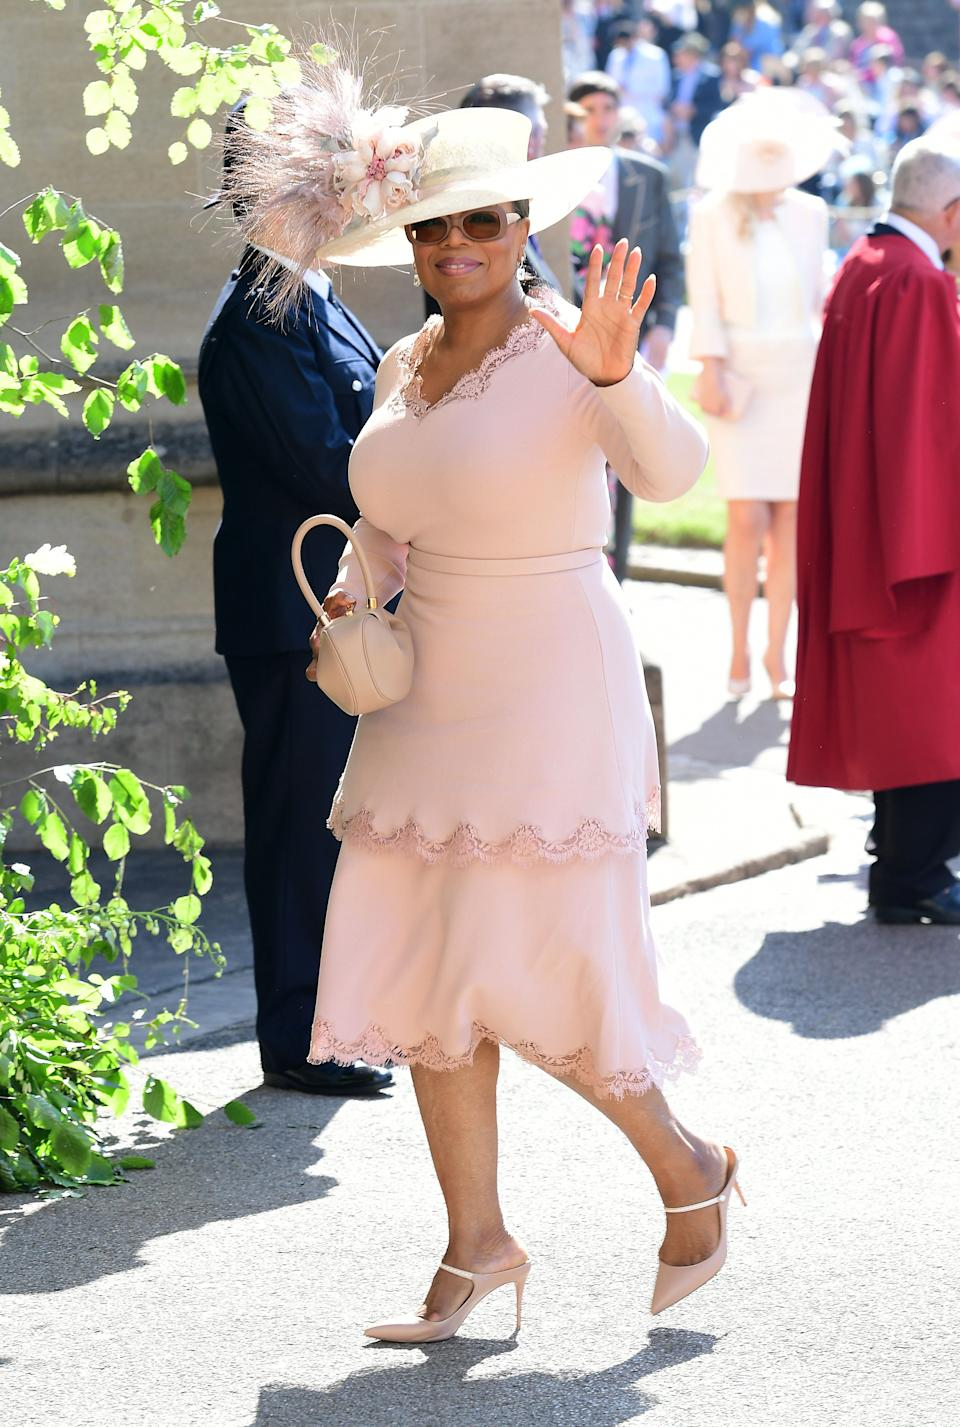 Oprah Winfrey arrives at St George's Chapel at Windsor Castle for the wedding of Meghan Markle and Prince Harry. (Photo: PA Wire/PA Images)